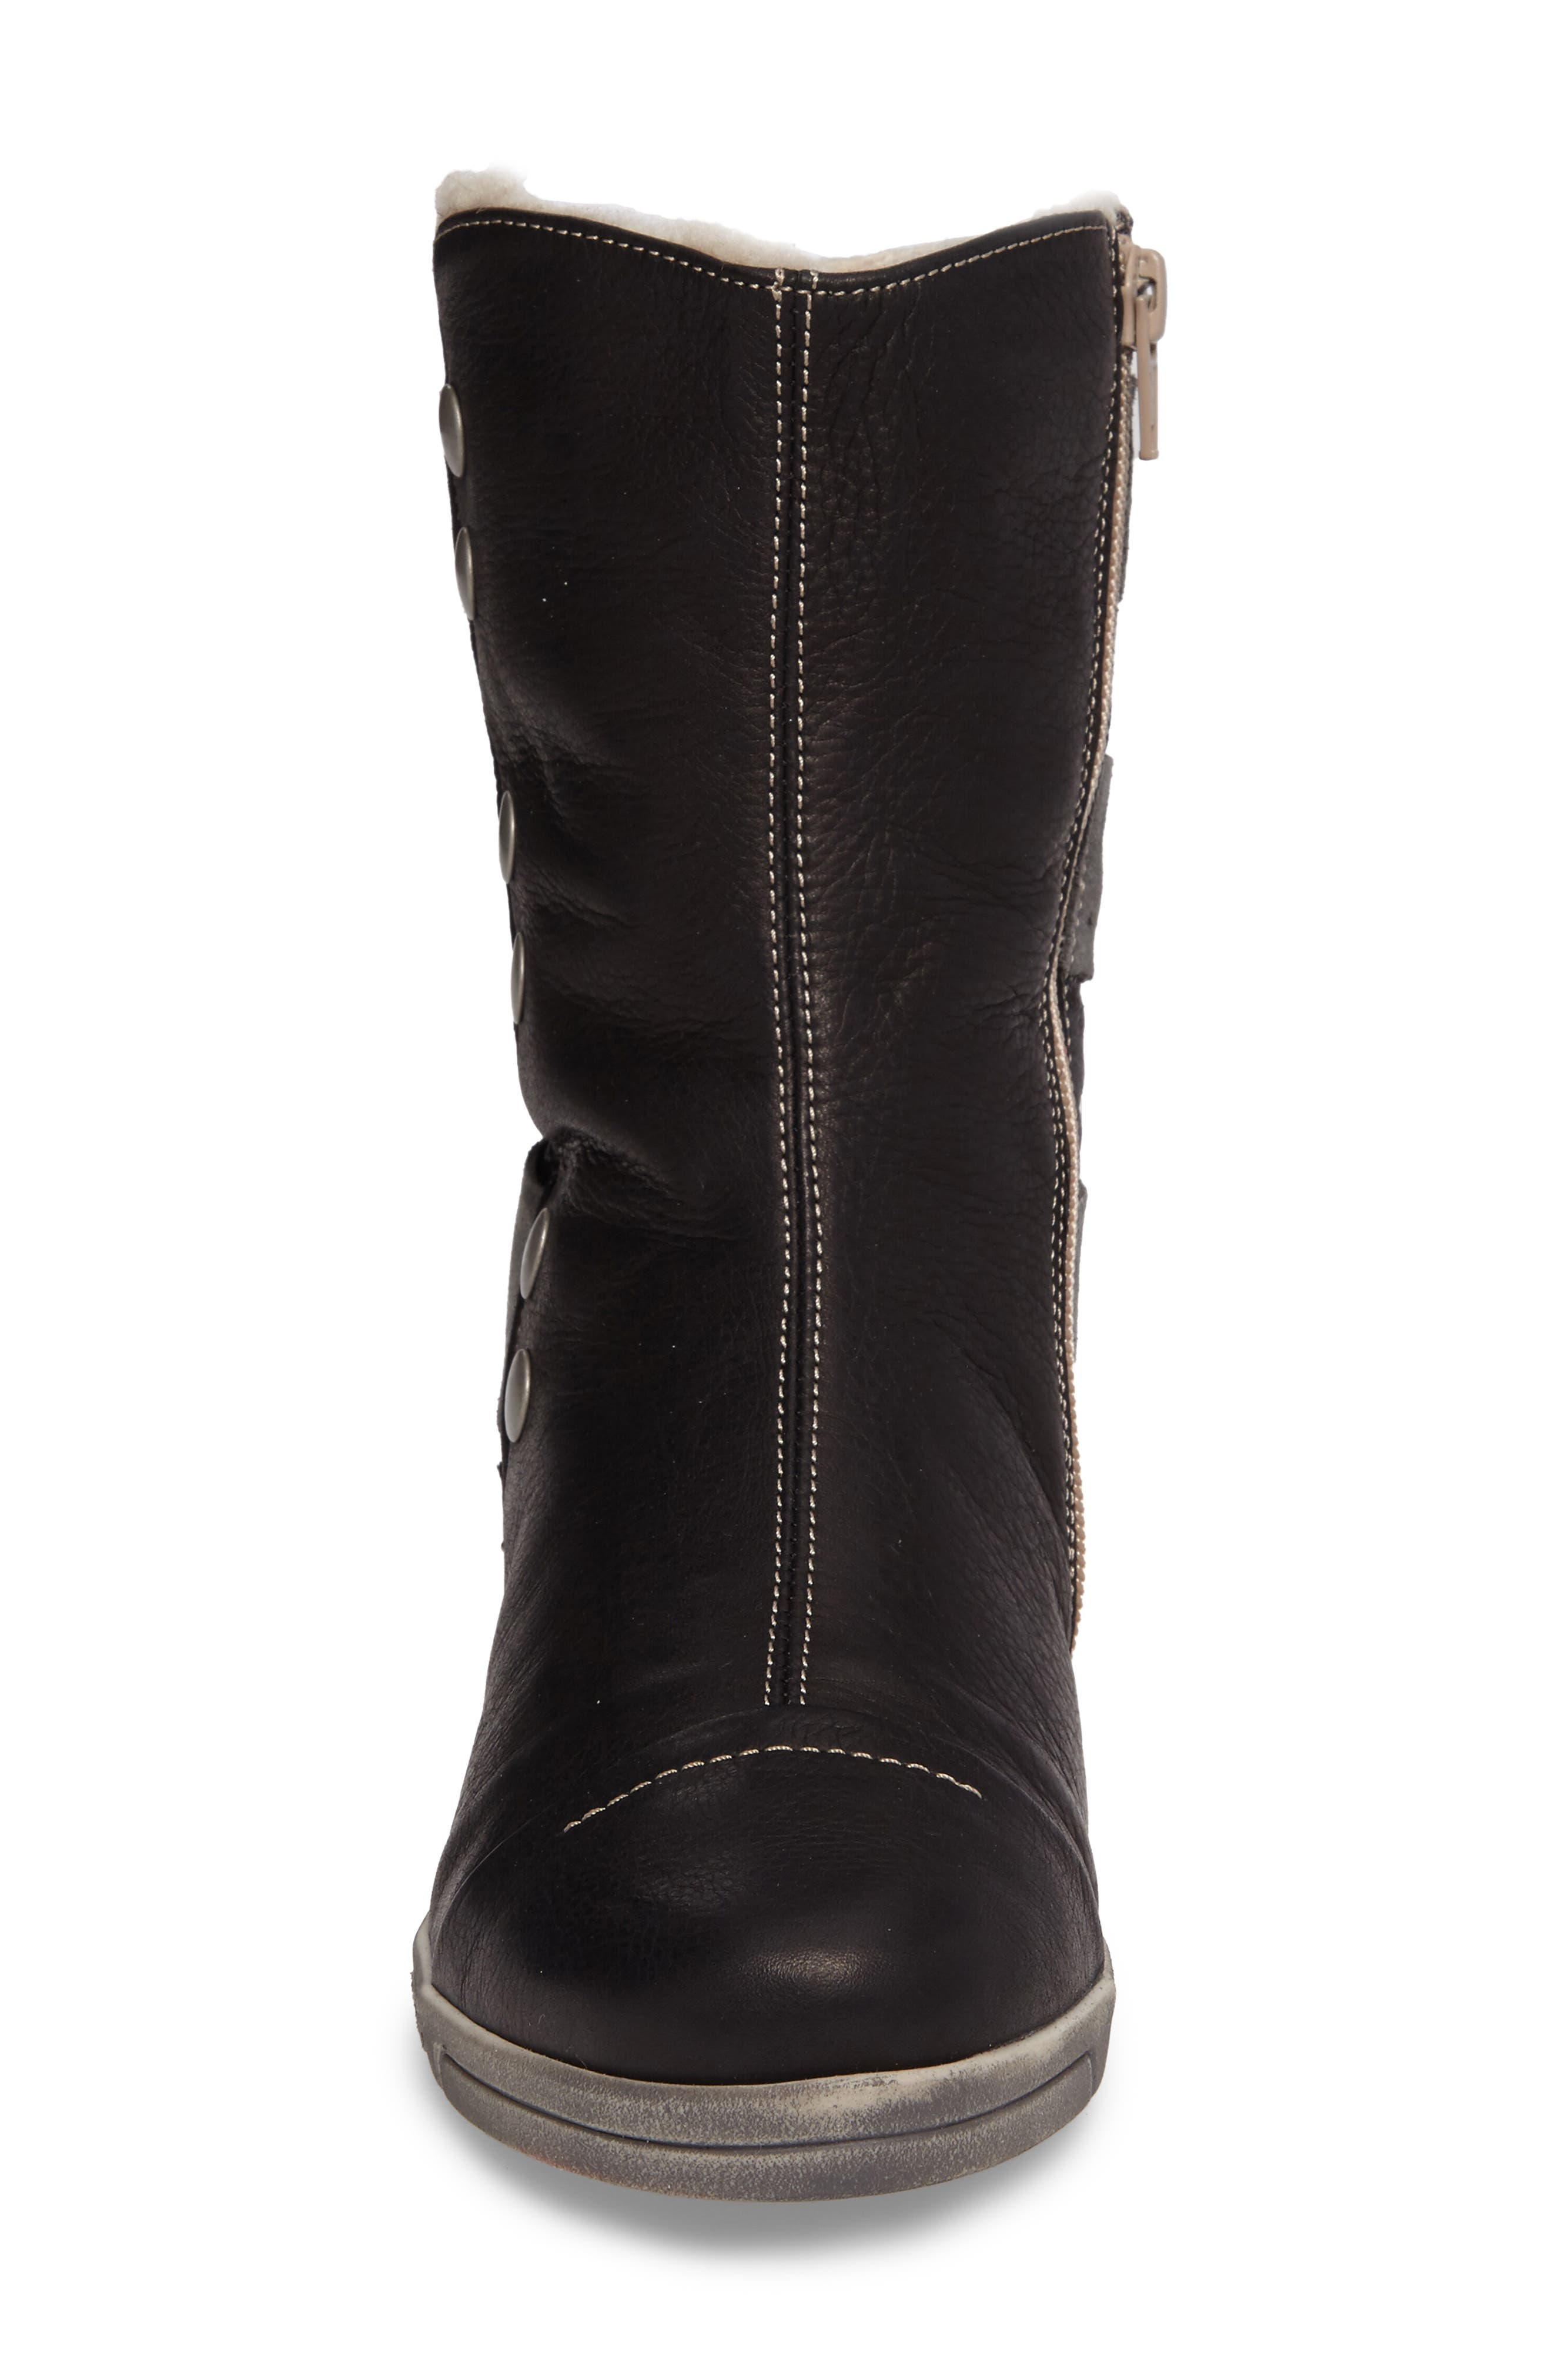 Amber Wool Lined Bootie,                             Alternate thumbnail 4, color,                             BLACK LEATHER